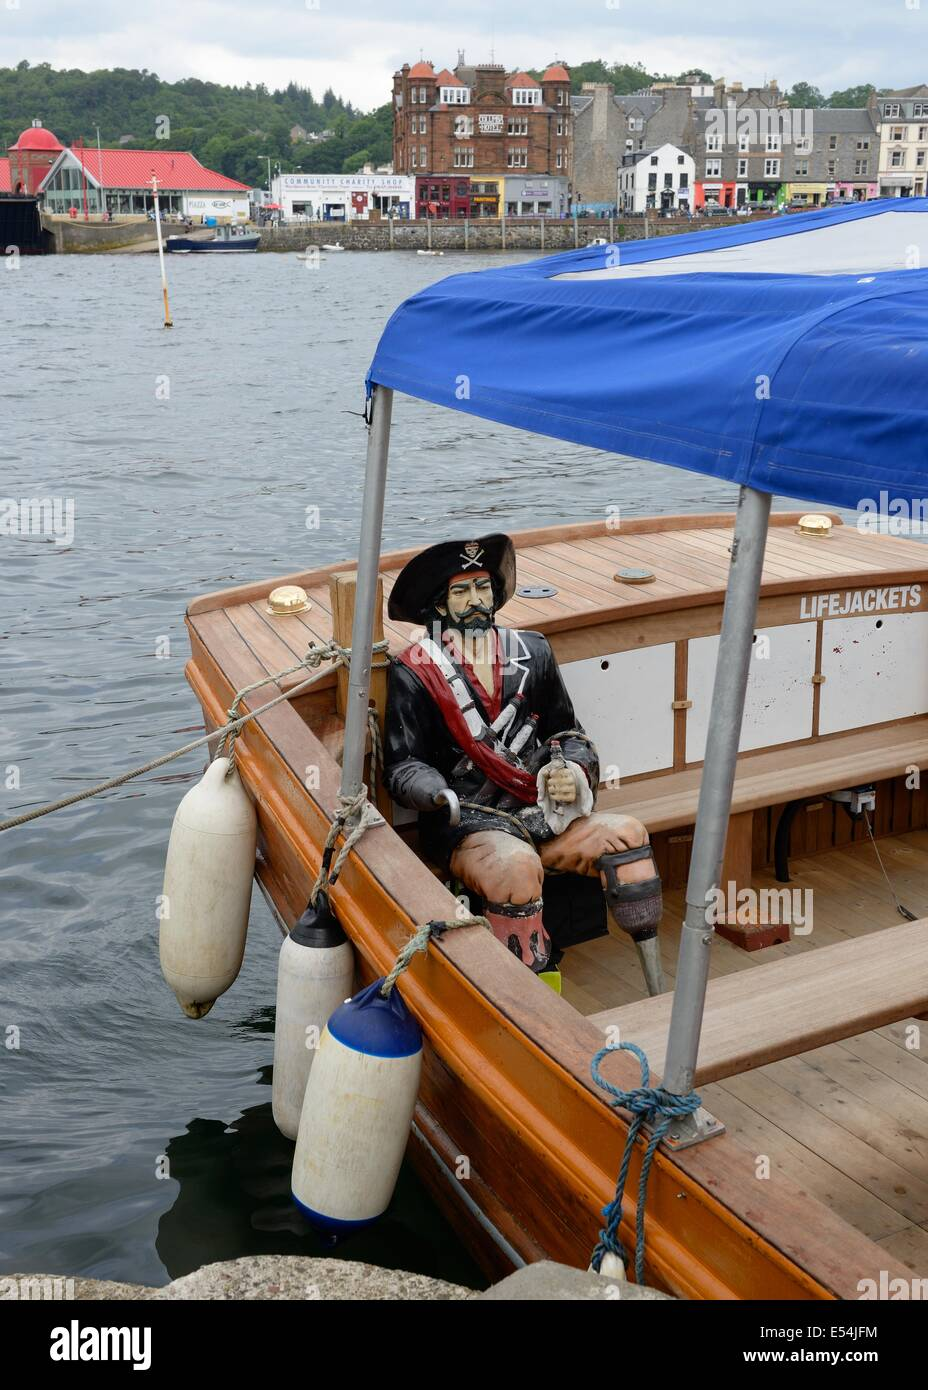 Passengers on trips on the boat 'Purple heather' are accompanied by this life size pirate figure. - Stock Image